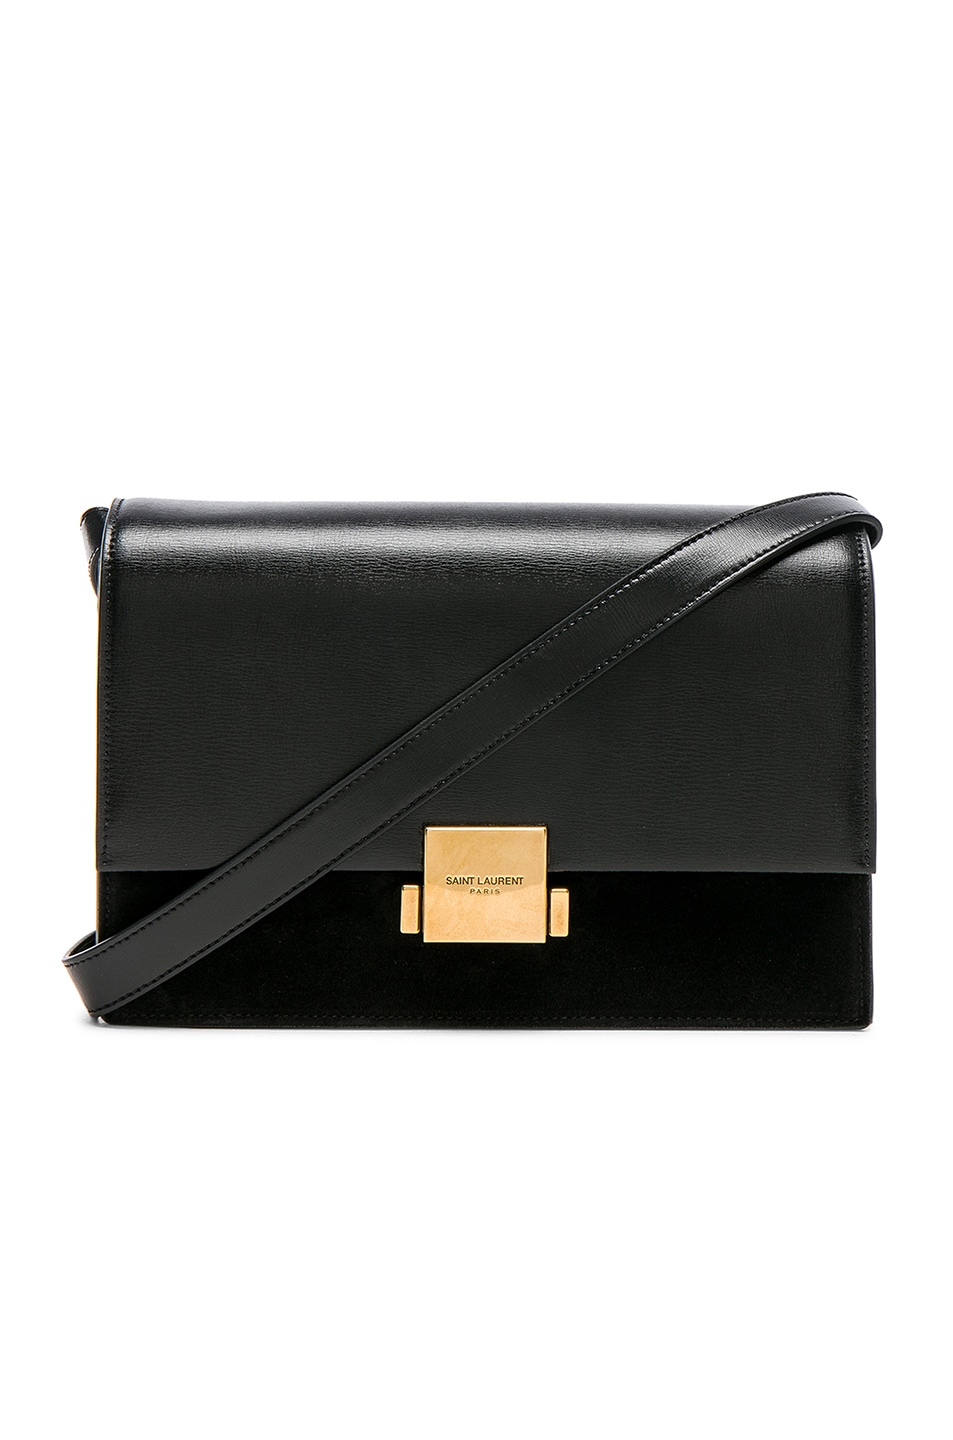 SAINT LAURENT Medium Bellechasse Suede & Leather Shoulder Bag - Black